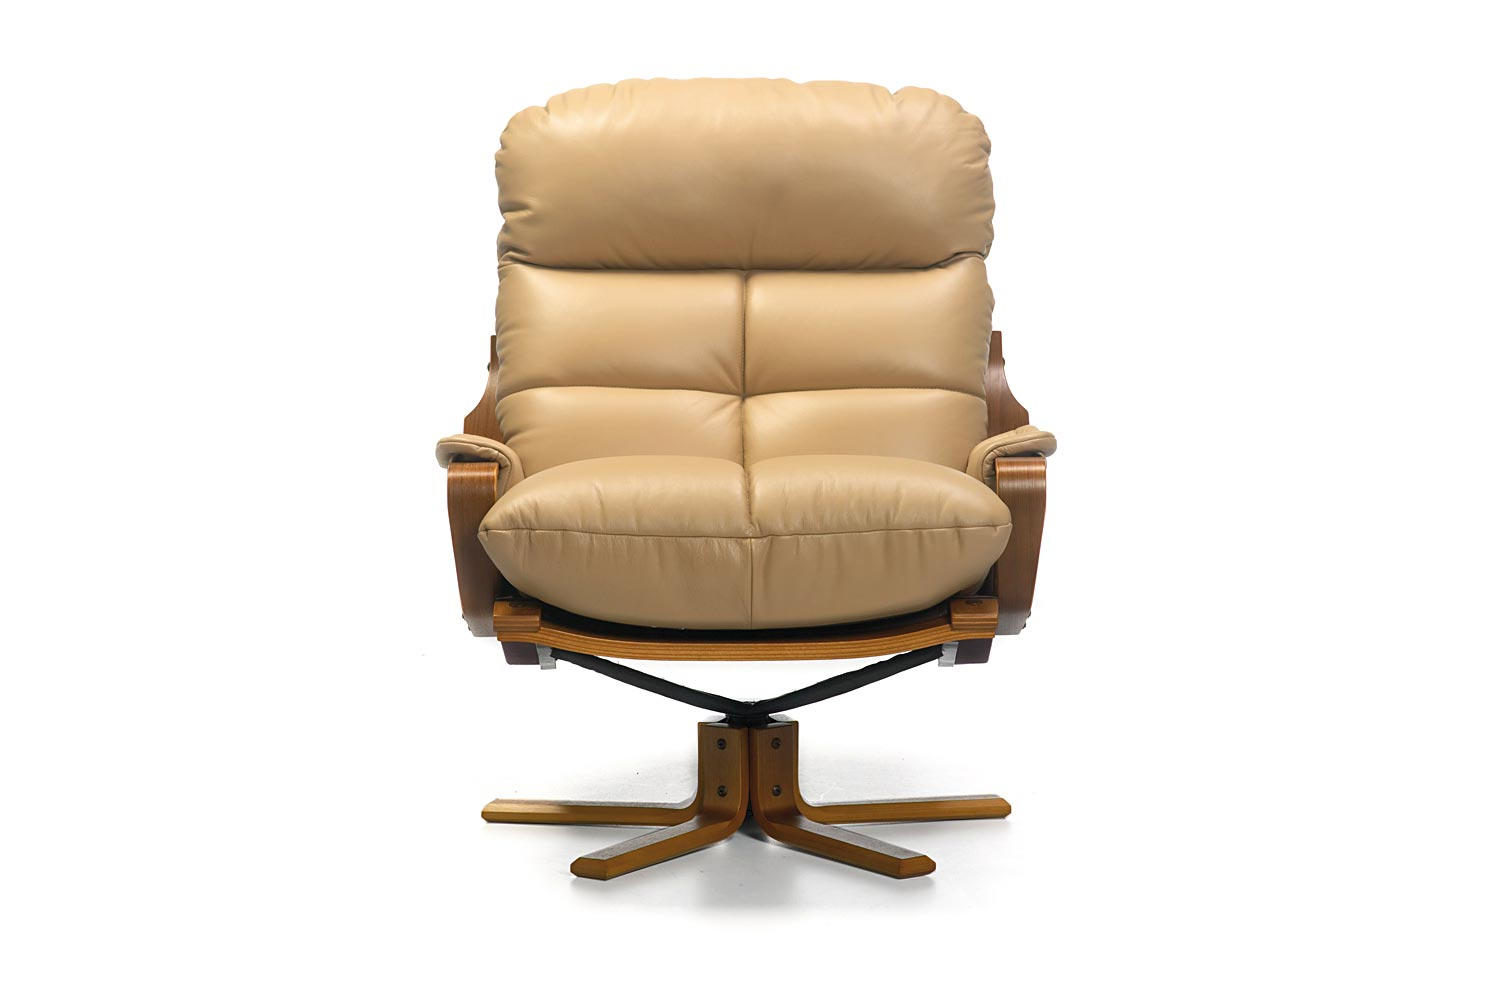 swivel chair harvey norman sogno massage price atlantis suite tessa furniture